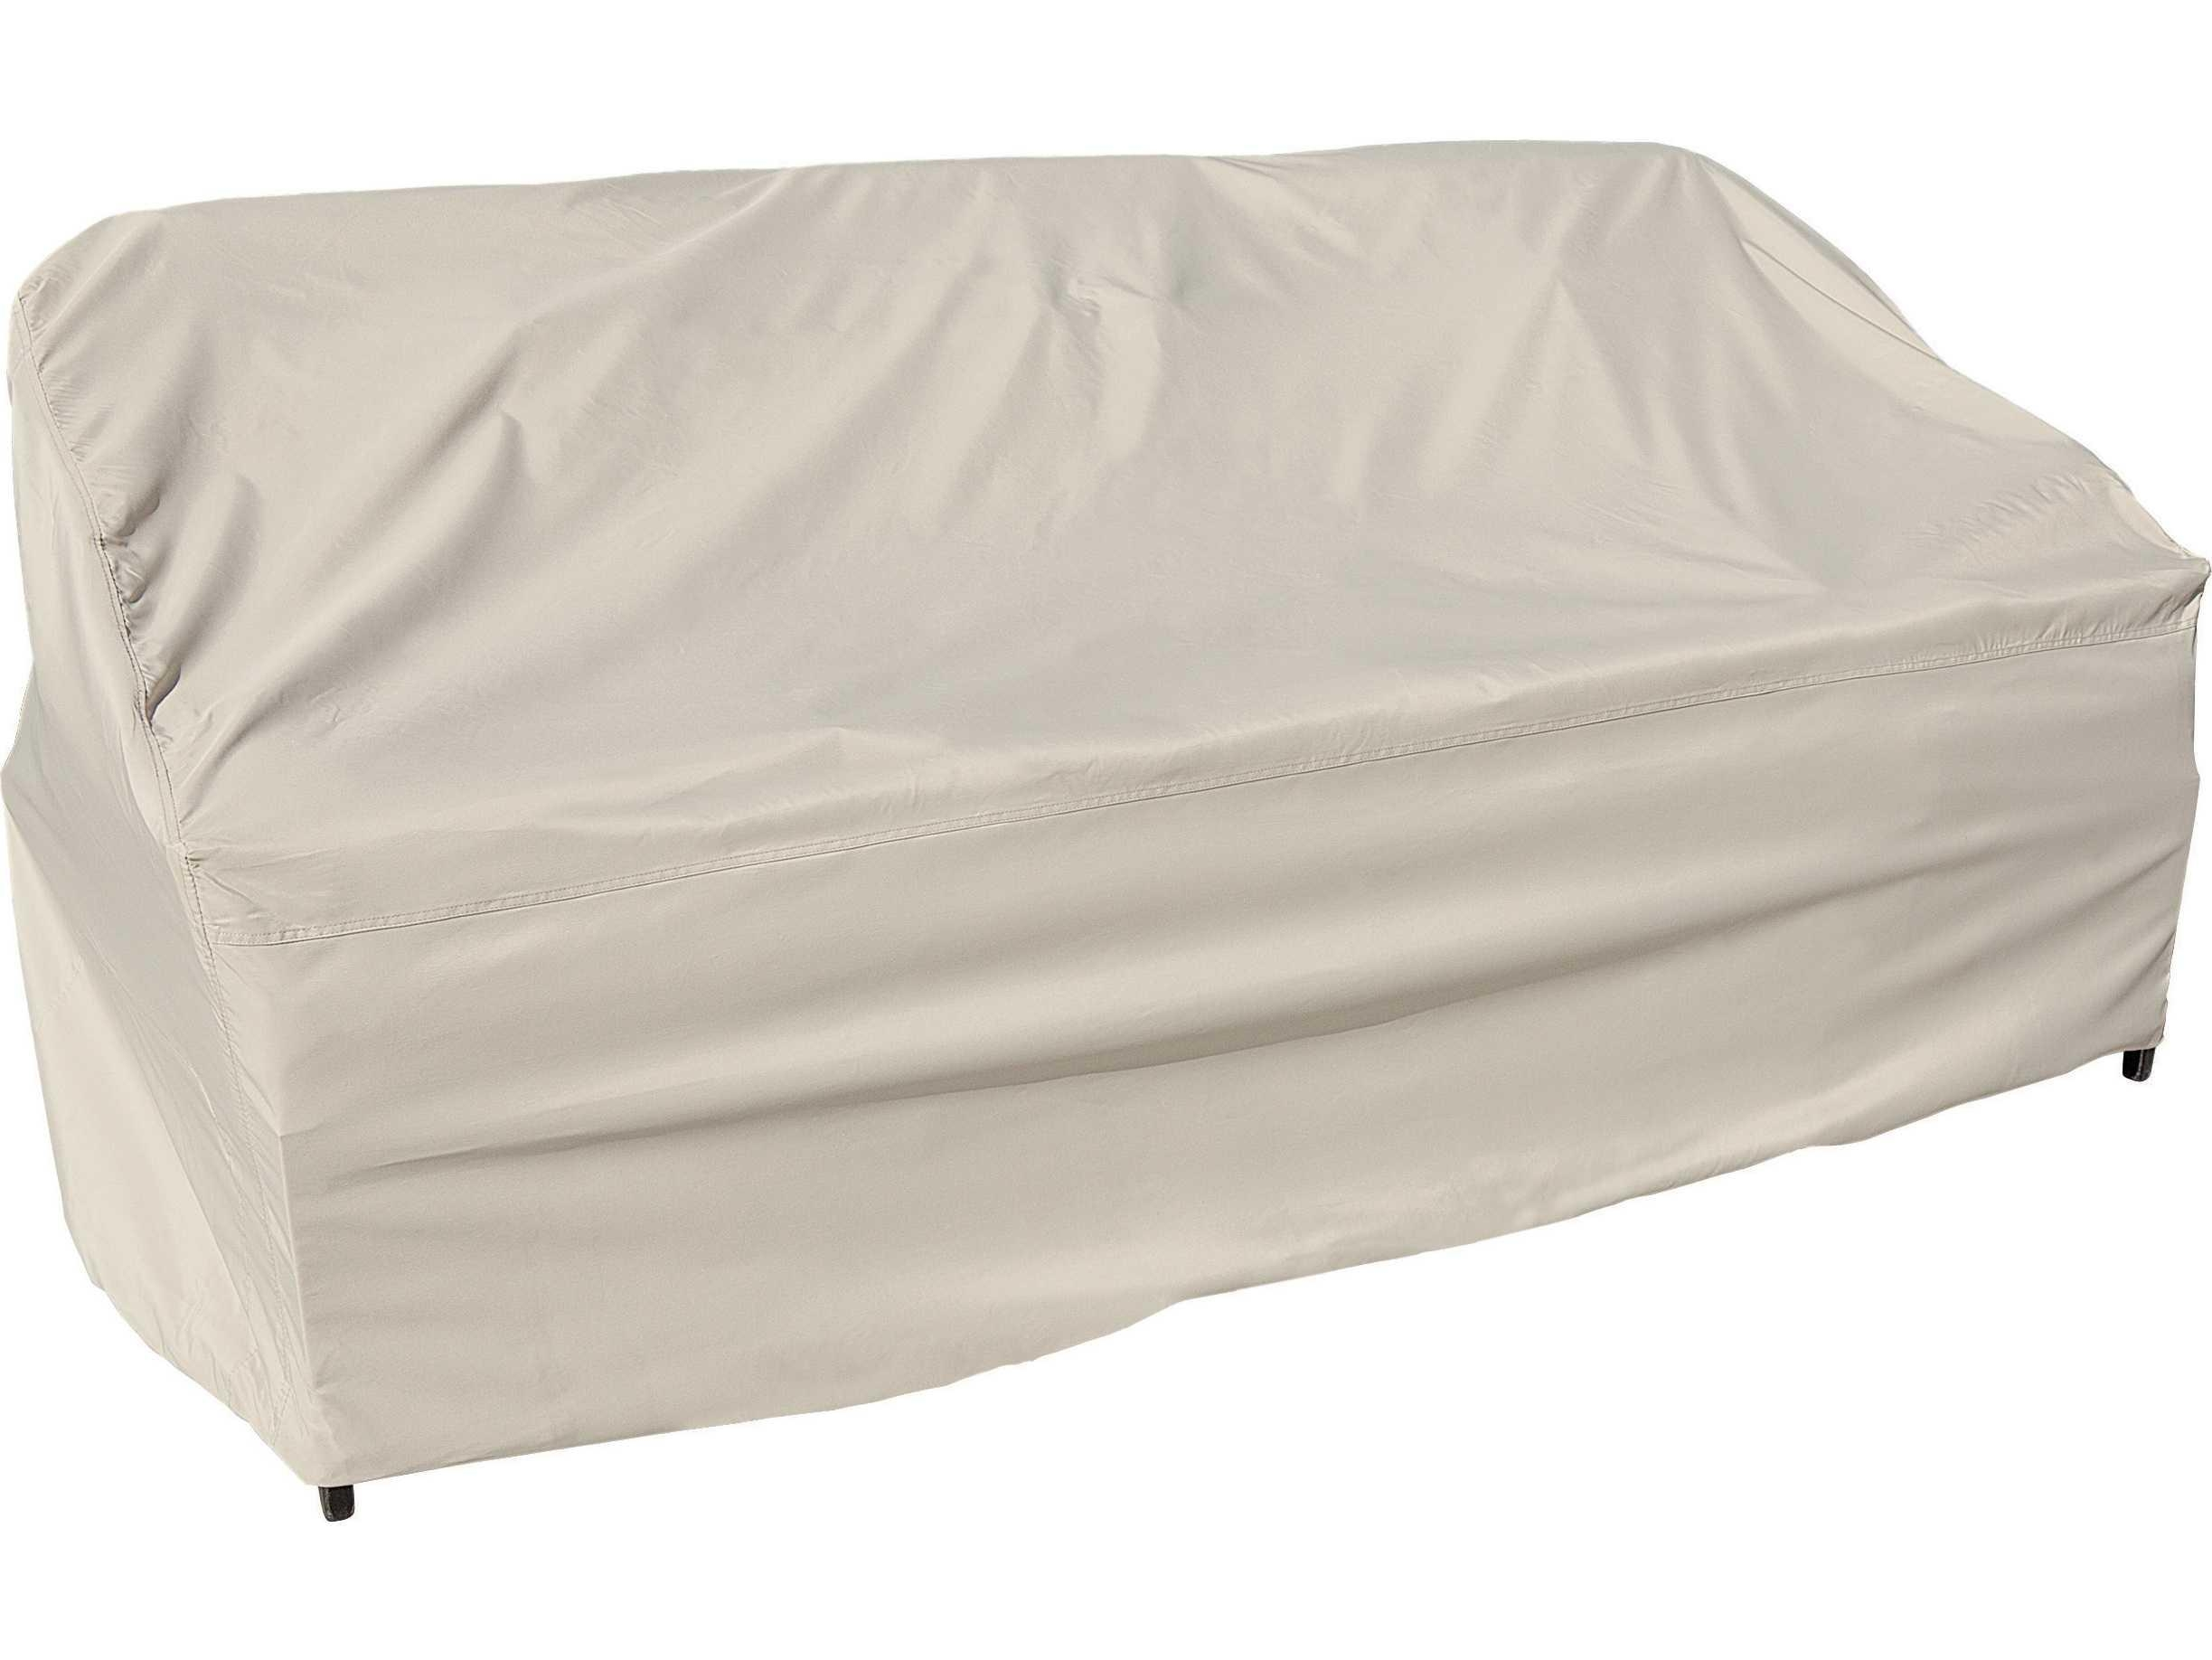 waterproof garden sofa covers bed craigslist los angeles 22 best ideas